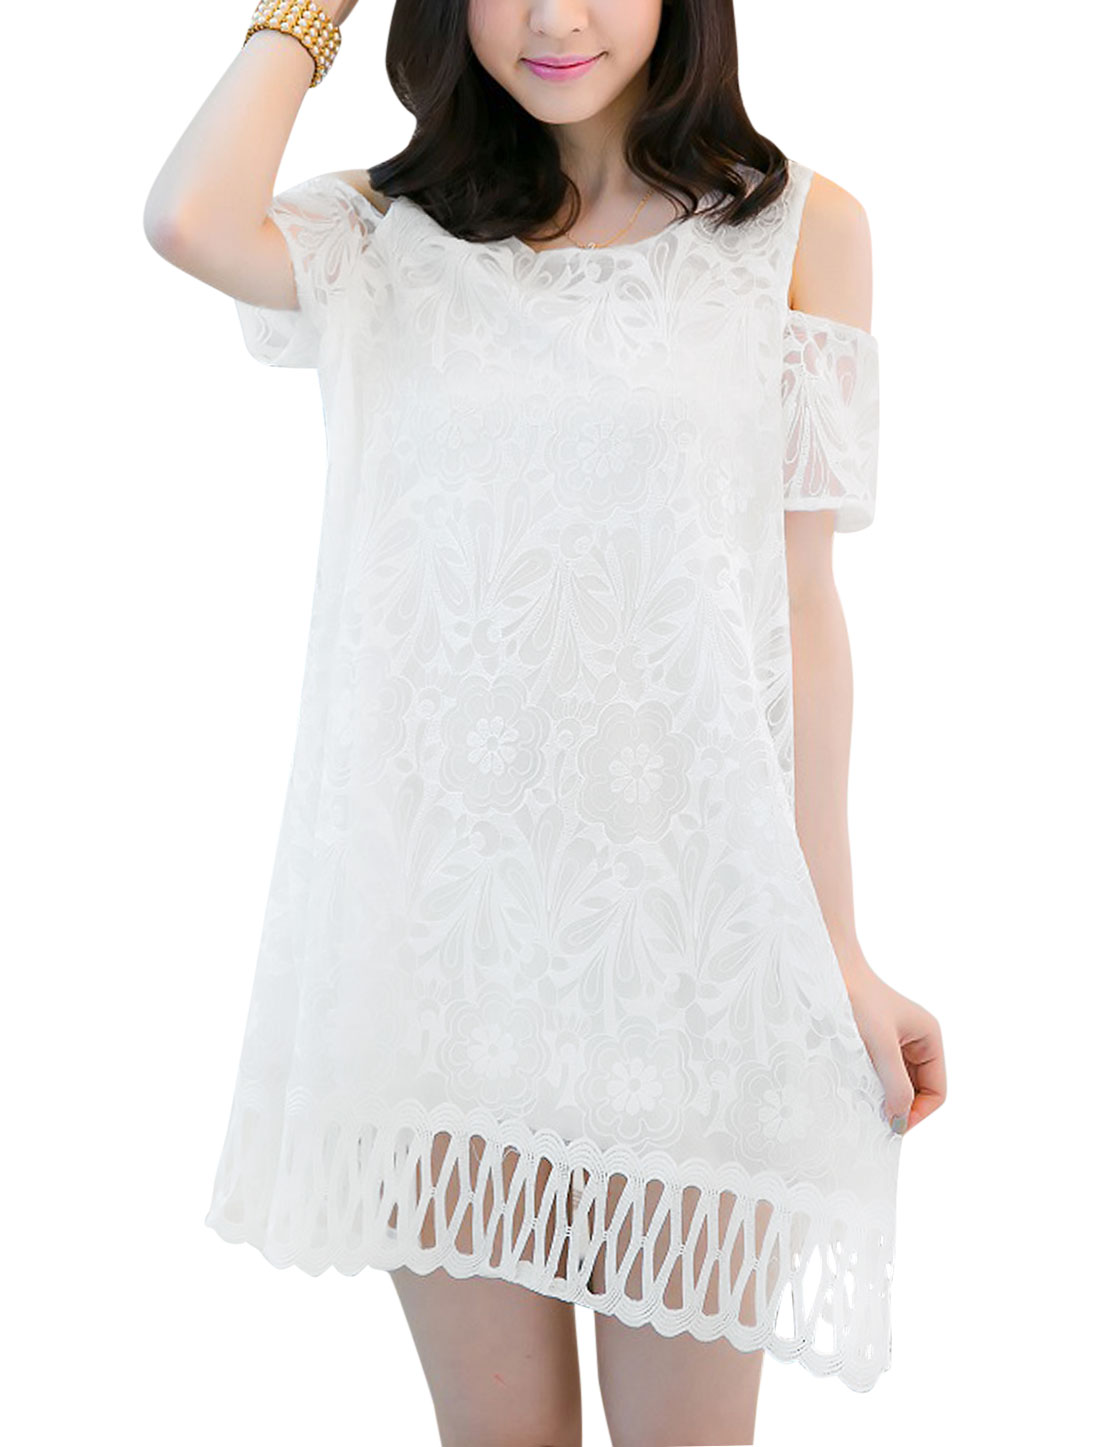 Lady Short Sleeve Cut Out Shoulder Lace Overlay Lining Dress White M